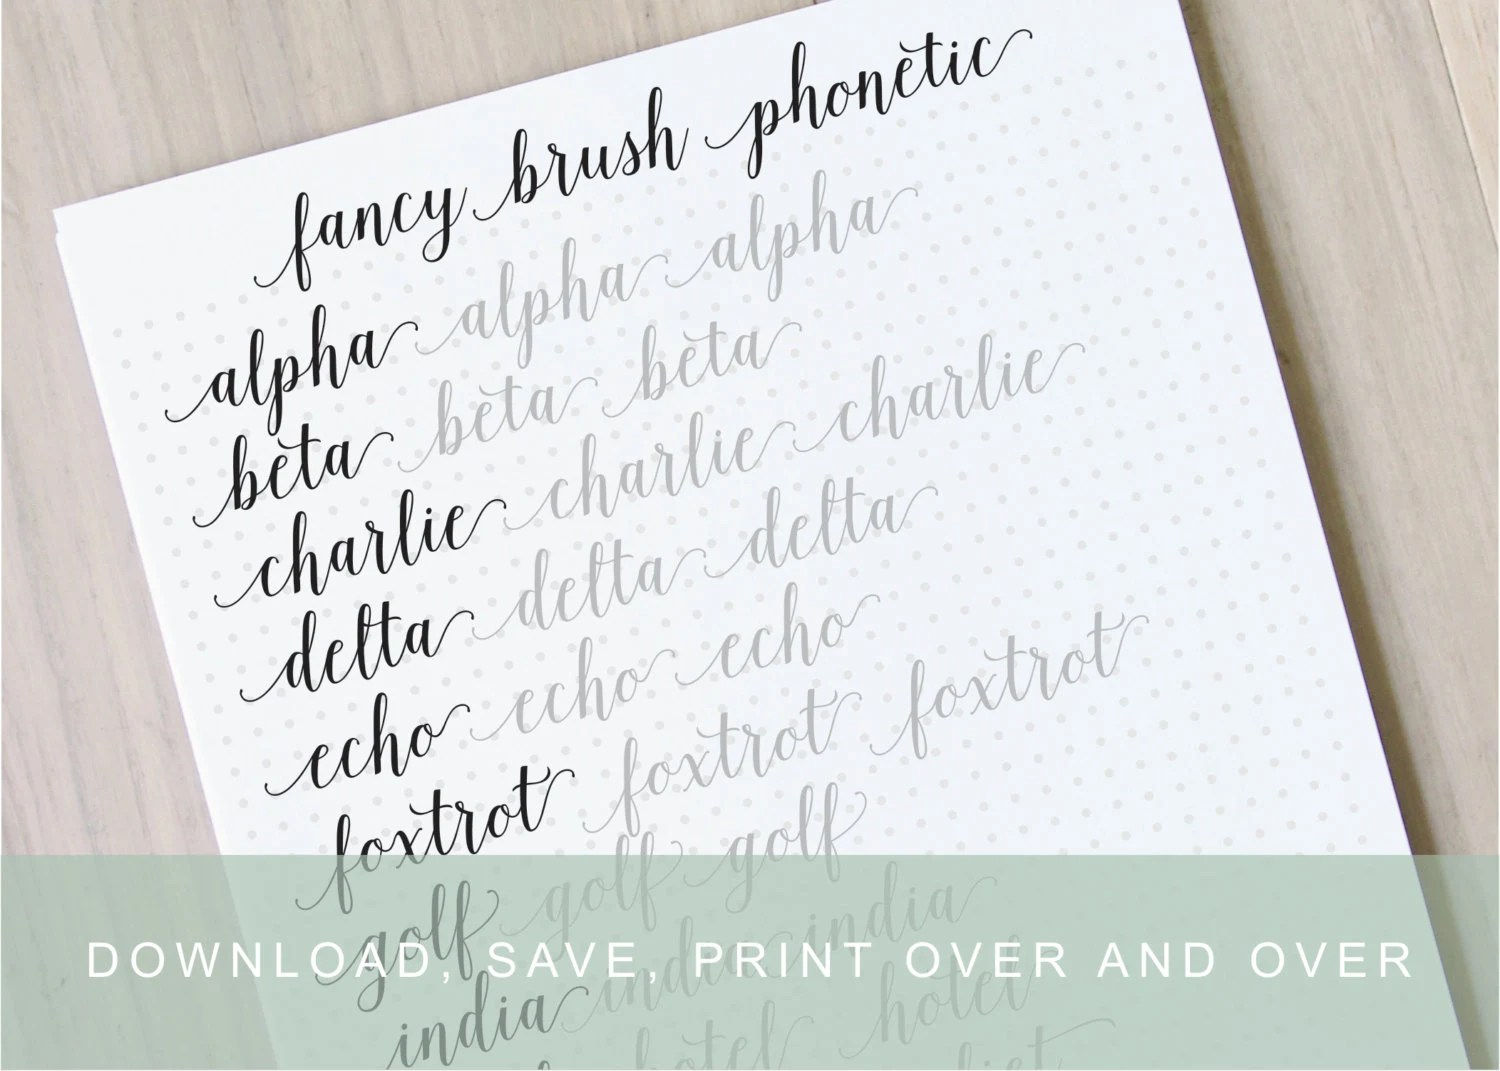 Intermediate Fancy Brush Lettering Worksheets Calligraphy